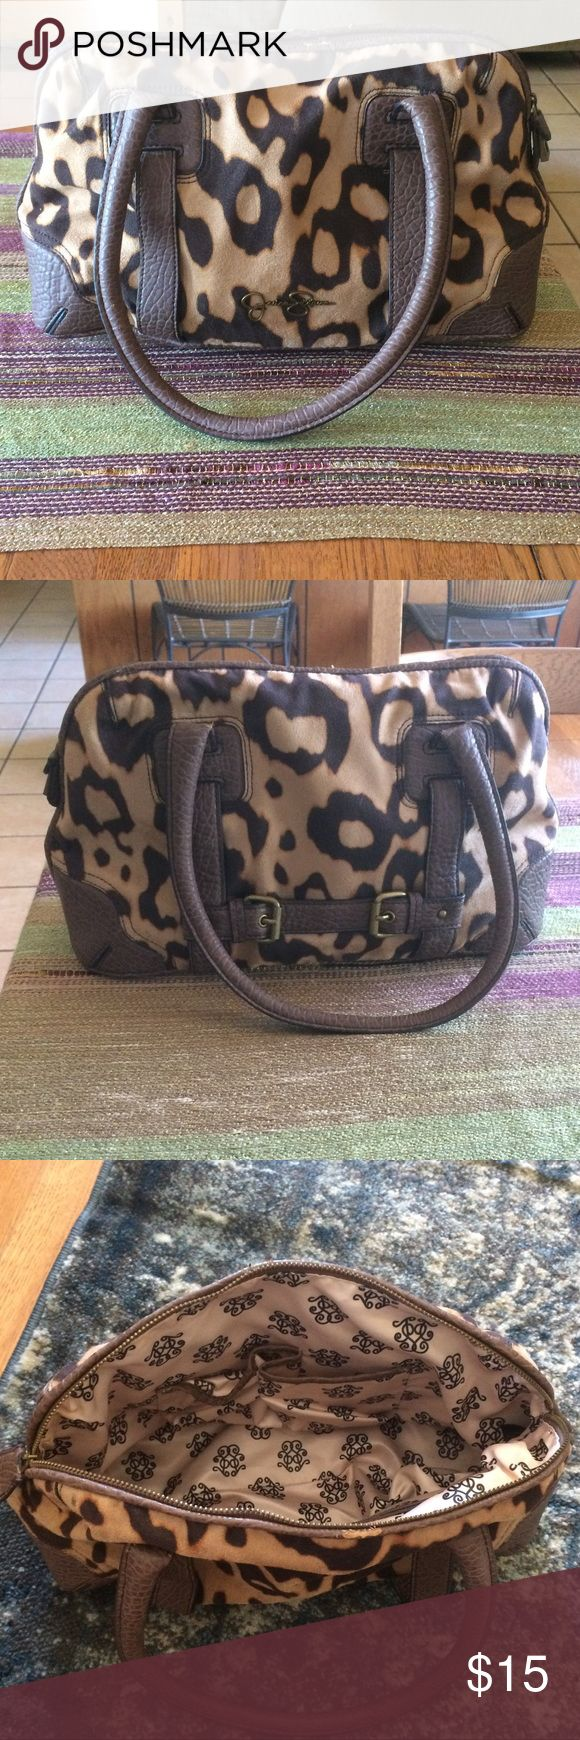 Jessica Simpson purse Very cute Jessica Simpson cheetah print purse with minor signs of wear shown in pictures Jessica Simpson Bags Shoulder Bags